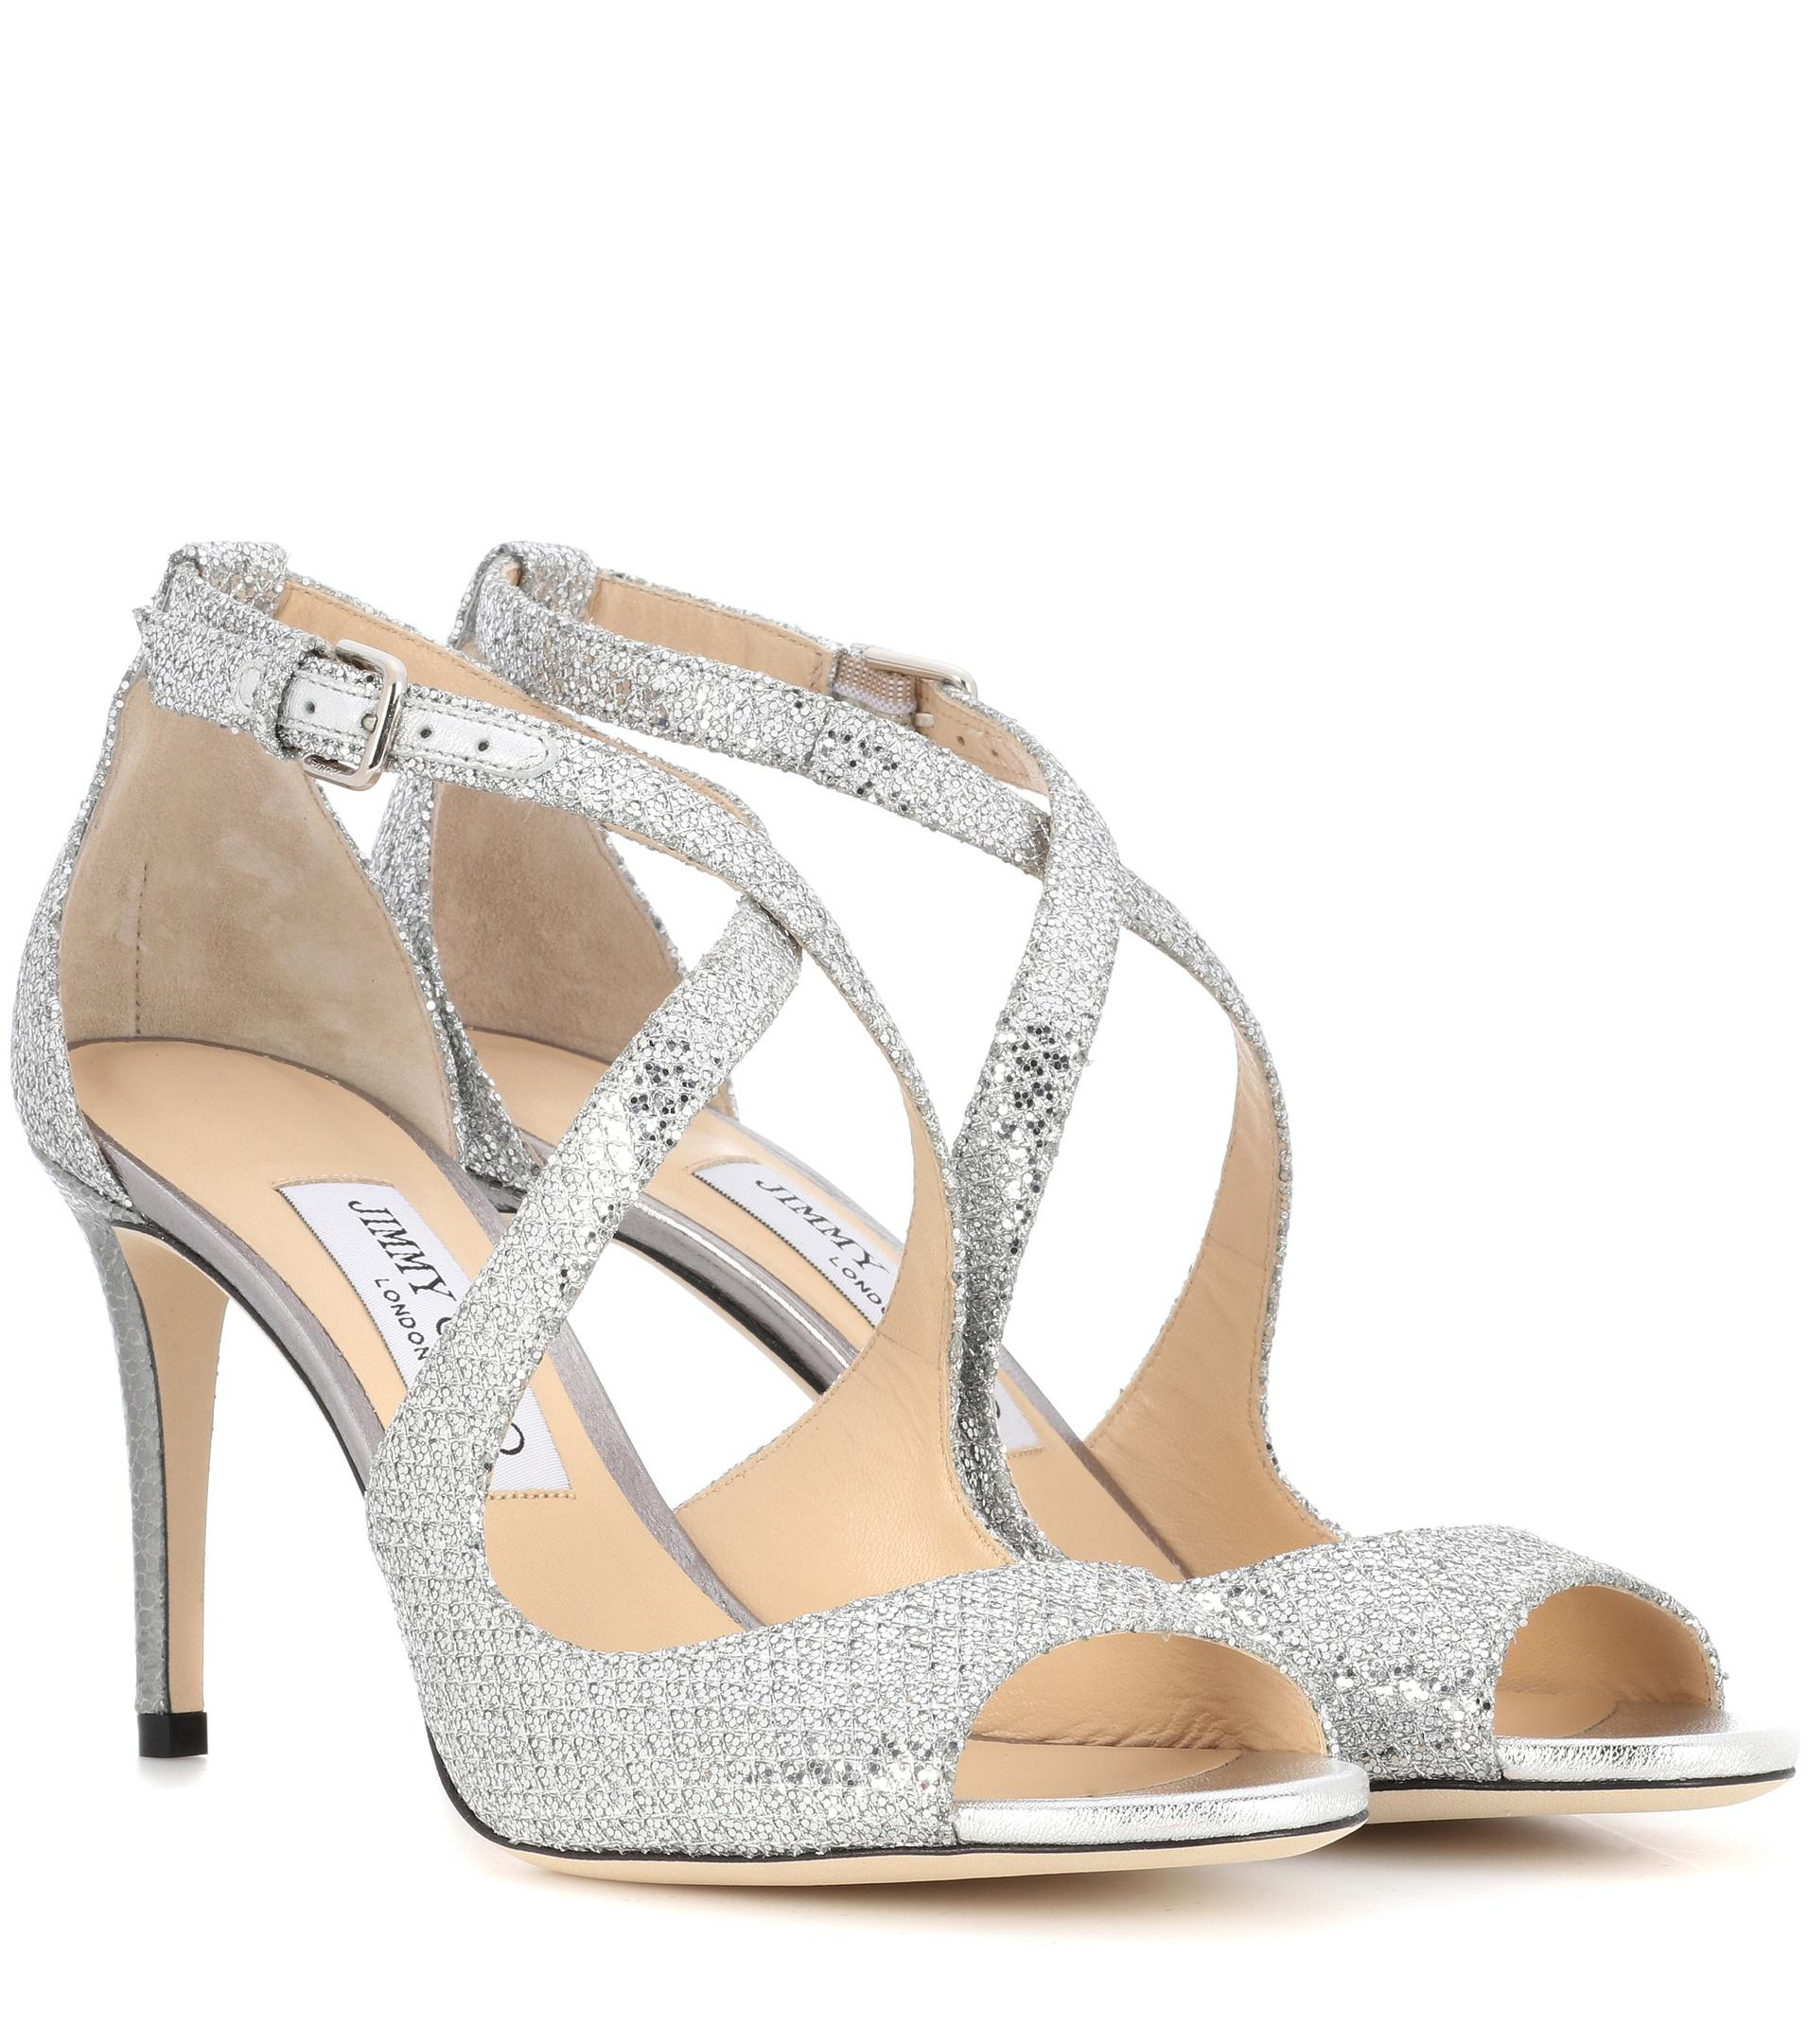 ccb15e51286e ... official store jimmy choo emily 85 glitter sandals in metallic lyst  75e77 e8fb5